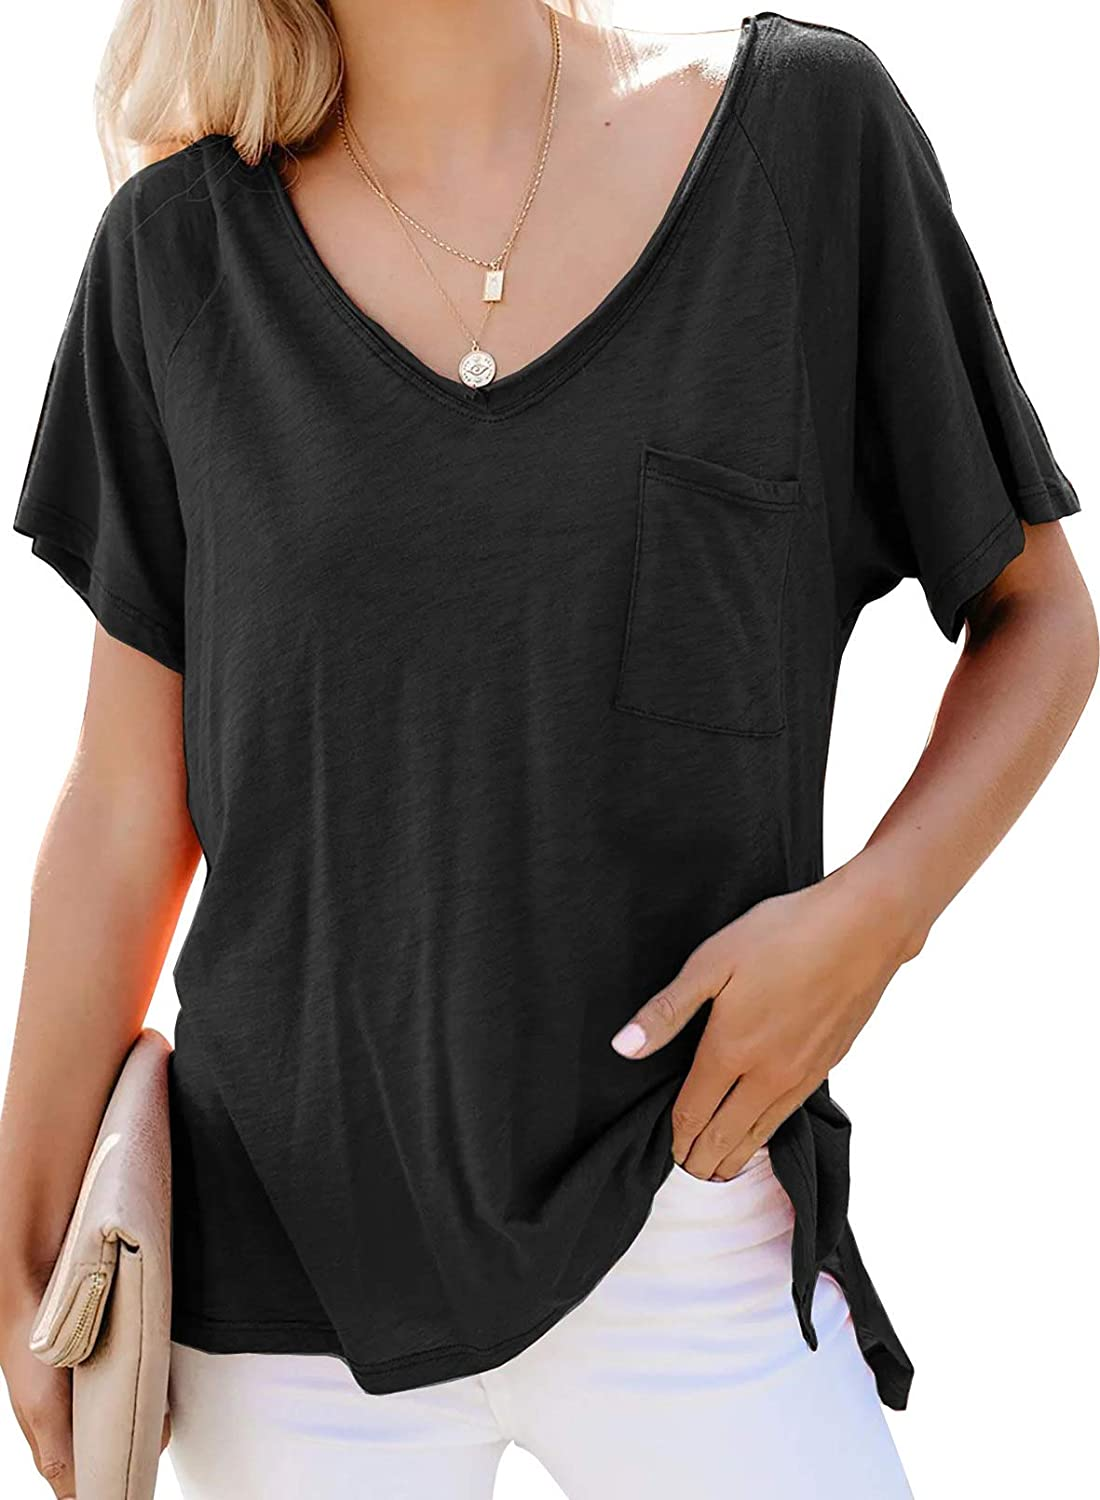 Biucly Women's Short Sleeve V-Neck Shirts Loose Casual Tee T-Shirt with Pocket